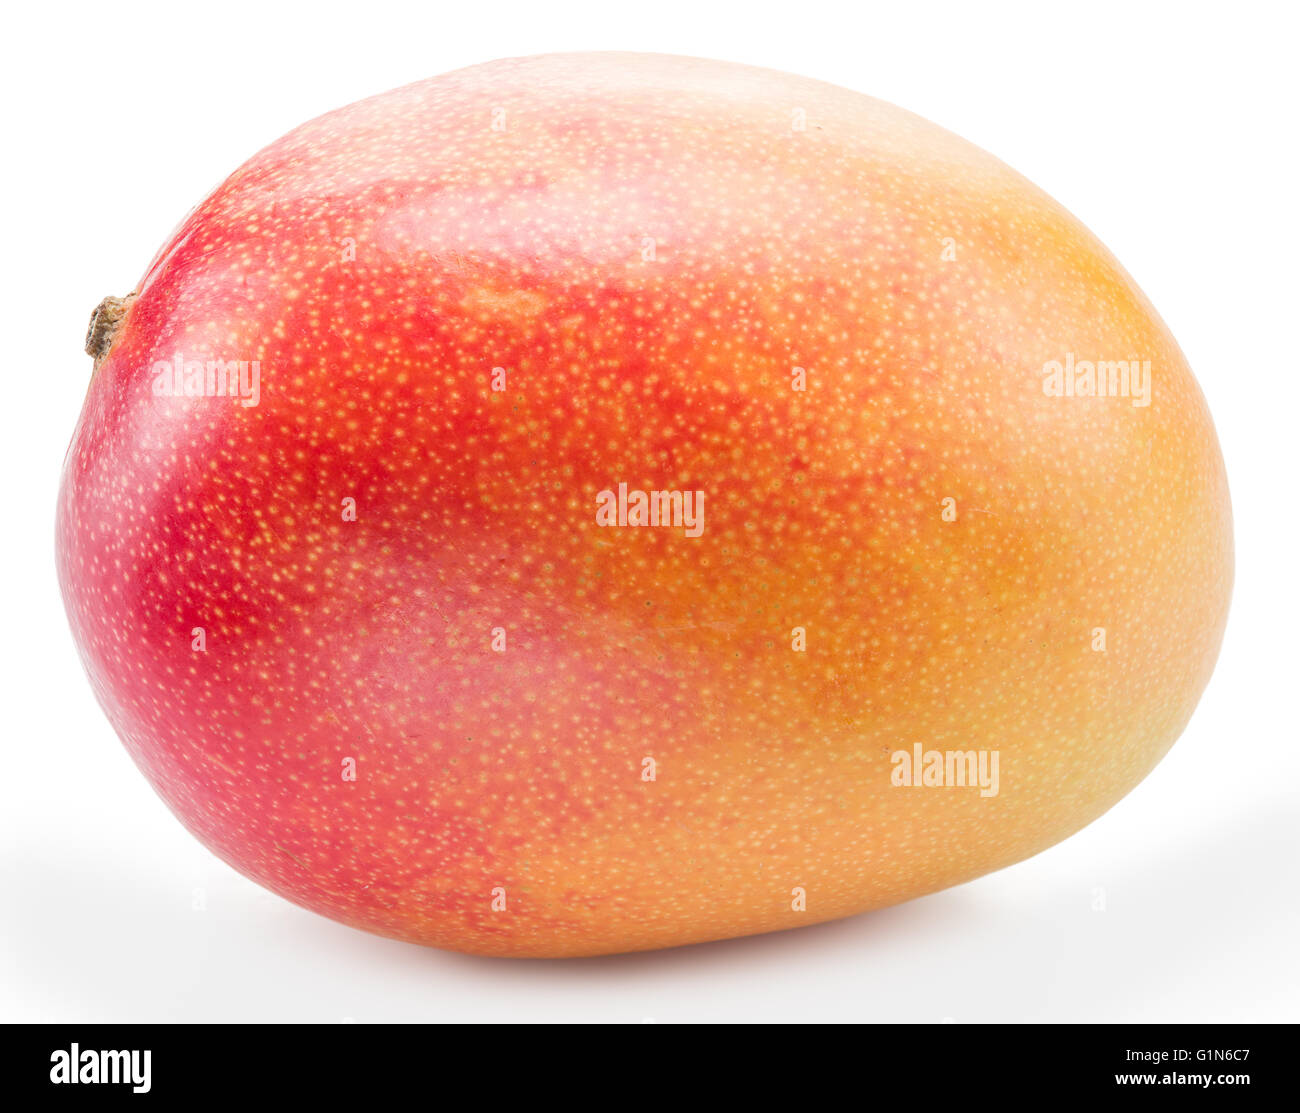 Mango fruit isolated on the white background. The picture of high quality. - Stock Image